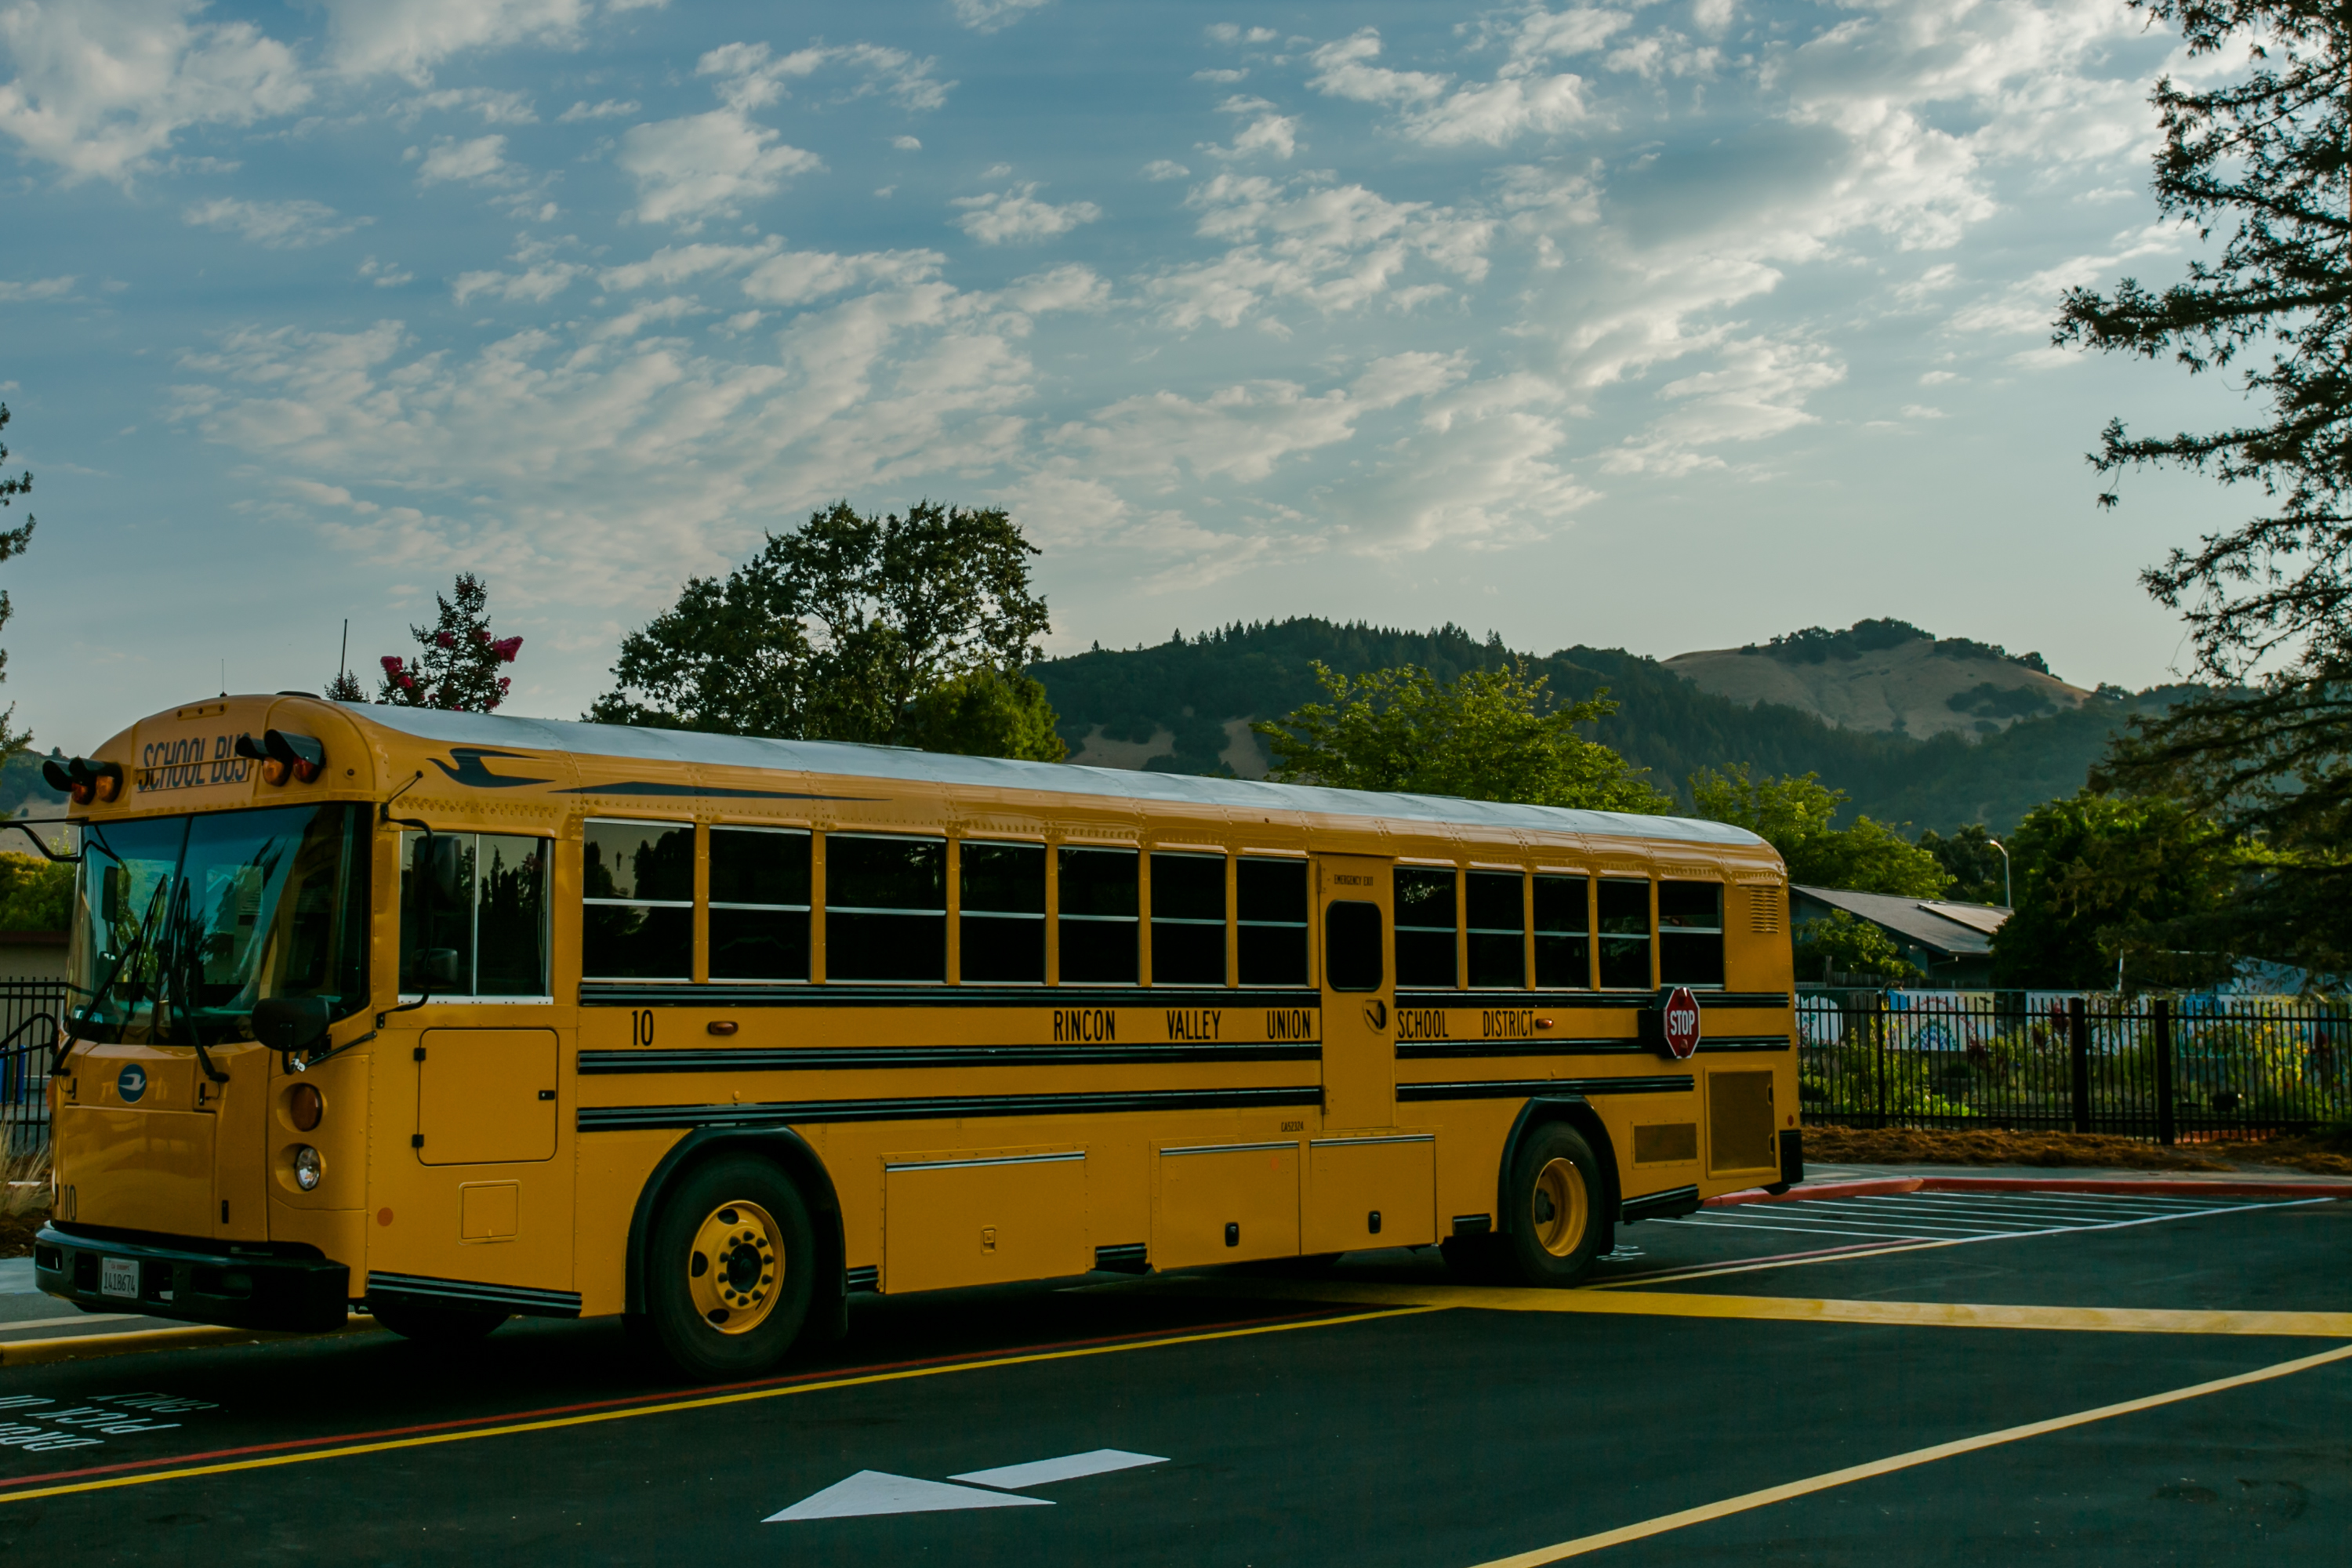 Bus in front of school